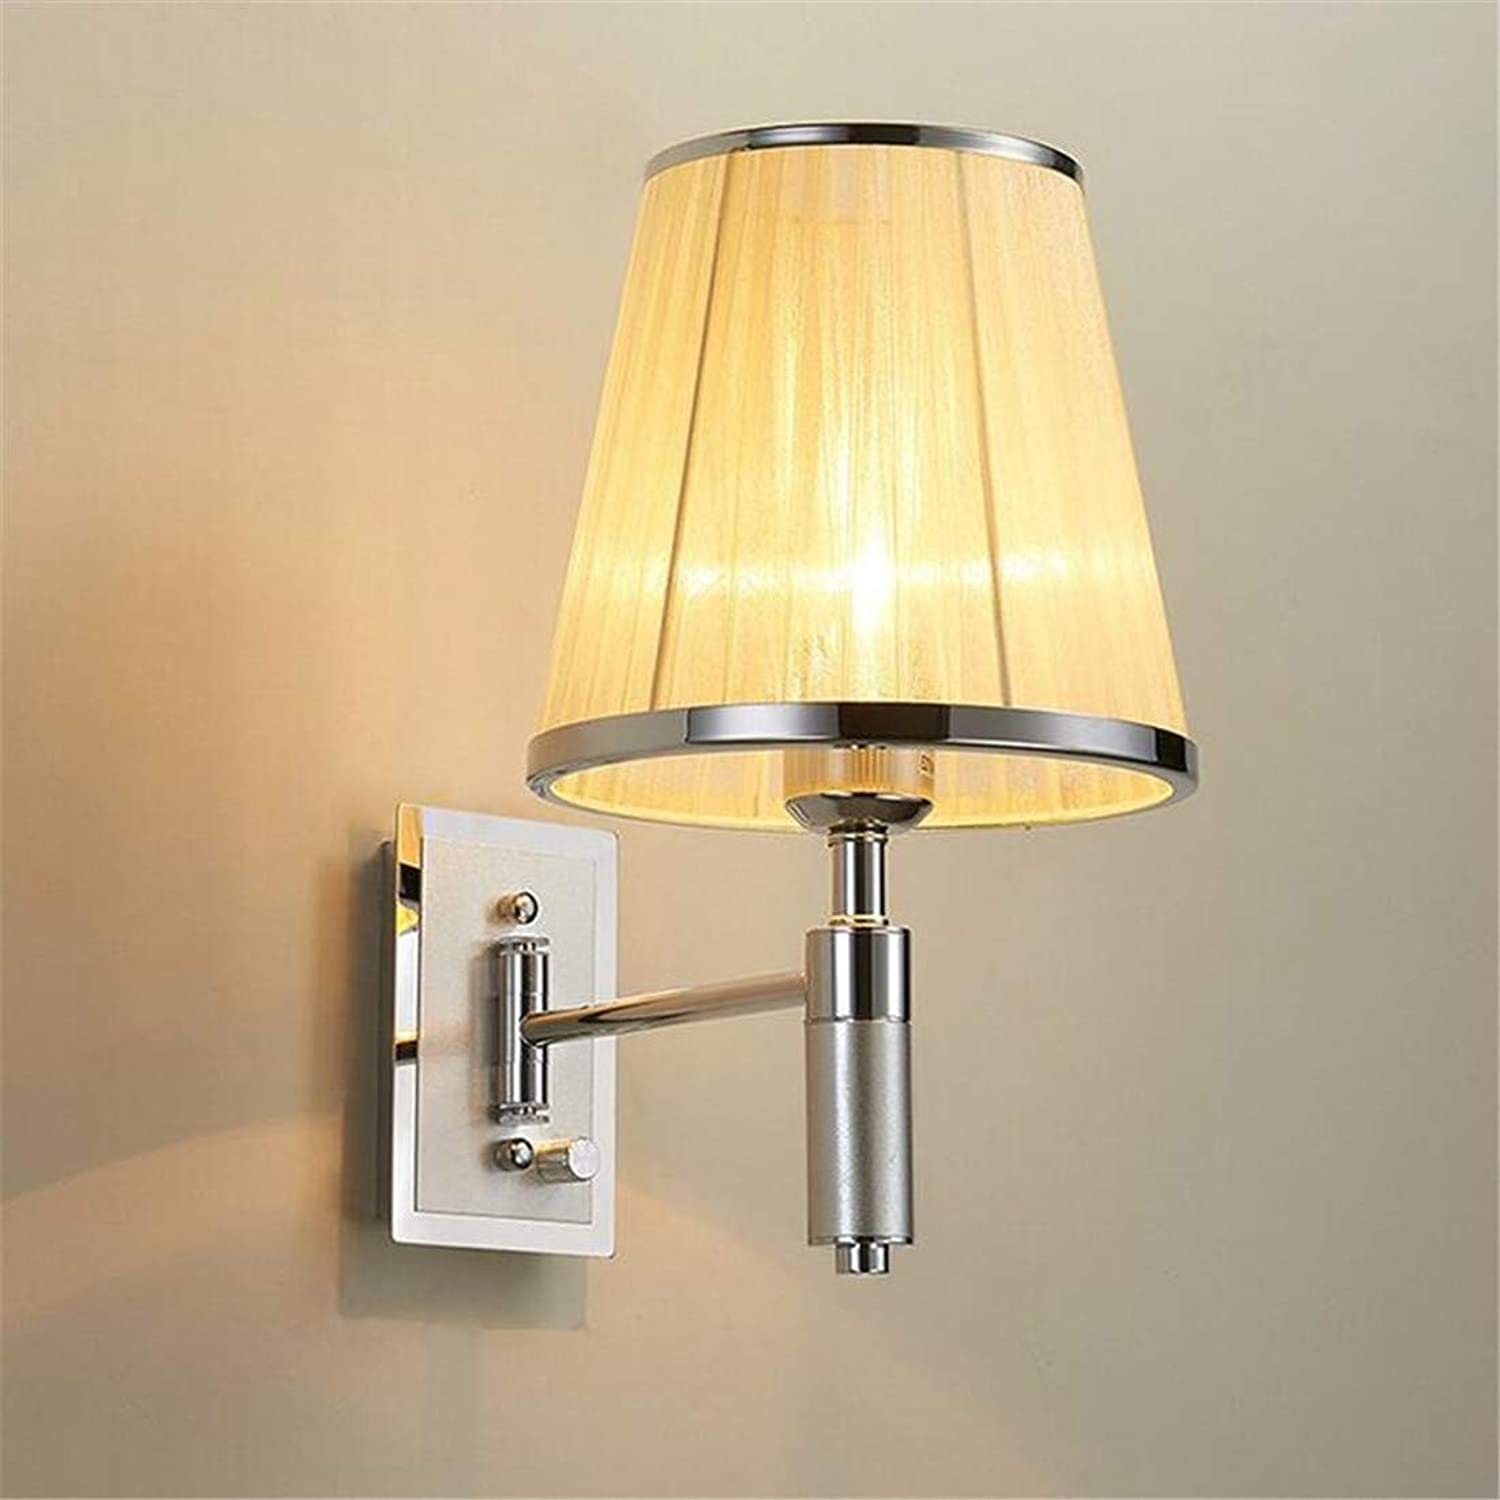 LED-Wandleuchte Chandelierwith Dimming Function Rocker Engineering Lamp